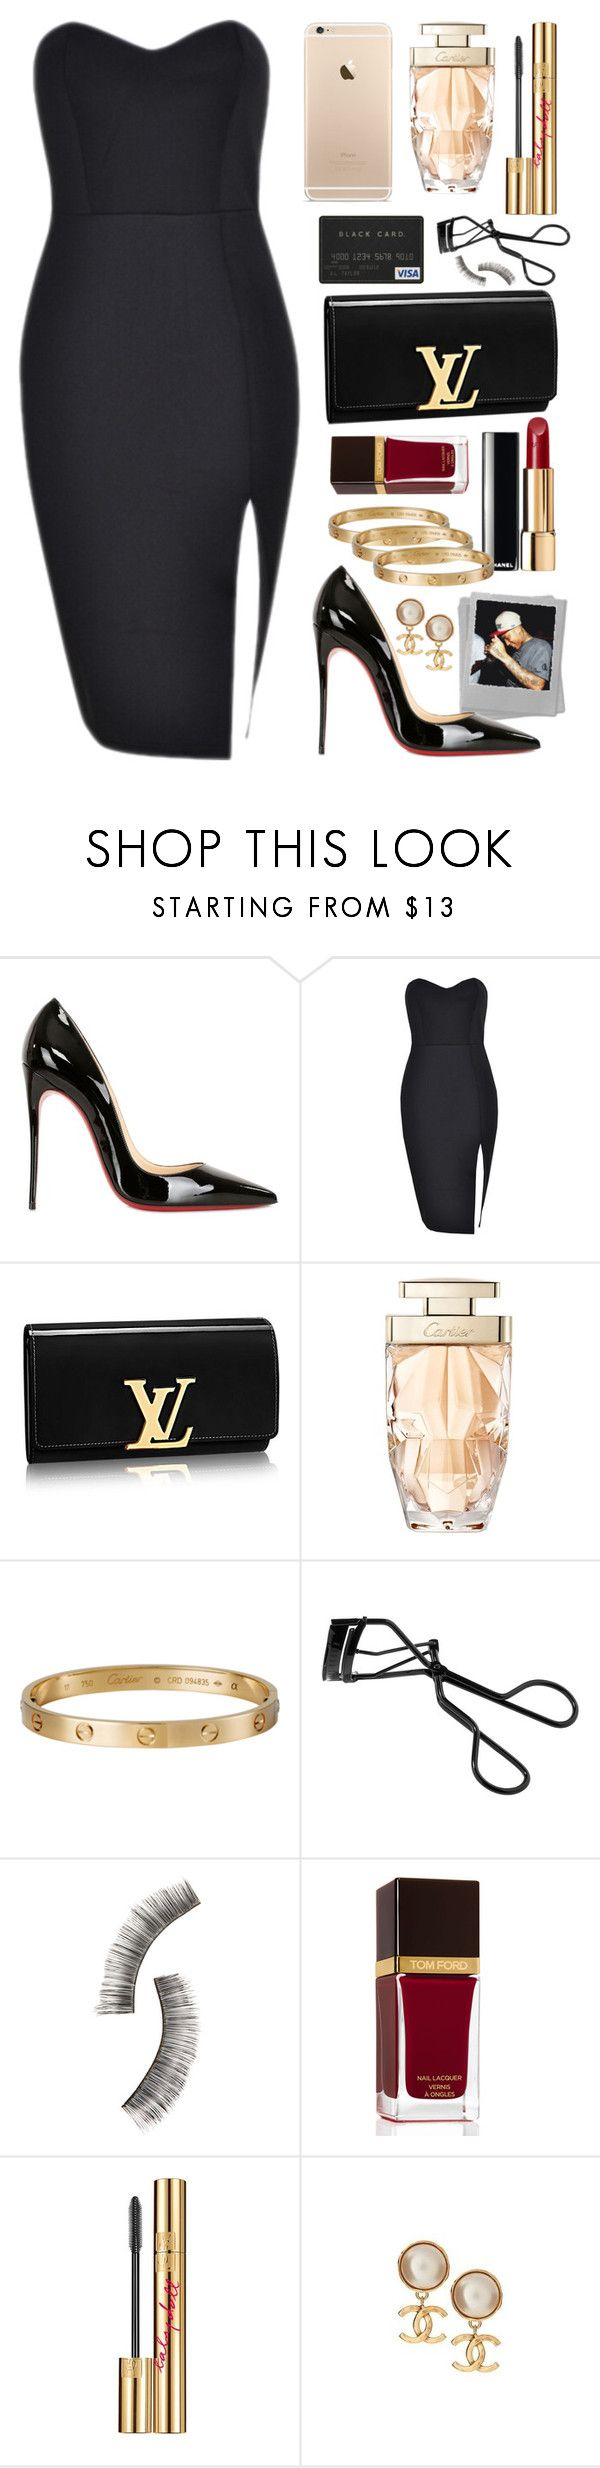 """Besos al aire."" by miumiu1 ❤ liked on Polyvore featuring Christian Louboutin, Louis Vuitton, Chanel, Cartier, Bobbi Brown Cosmetics, Beauty Is Life, Tom Ford and Yves Saint Laurent"